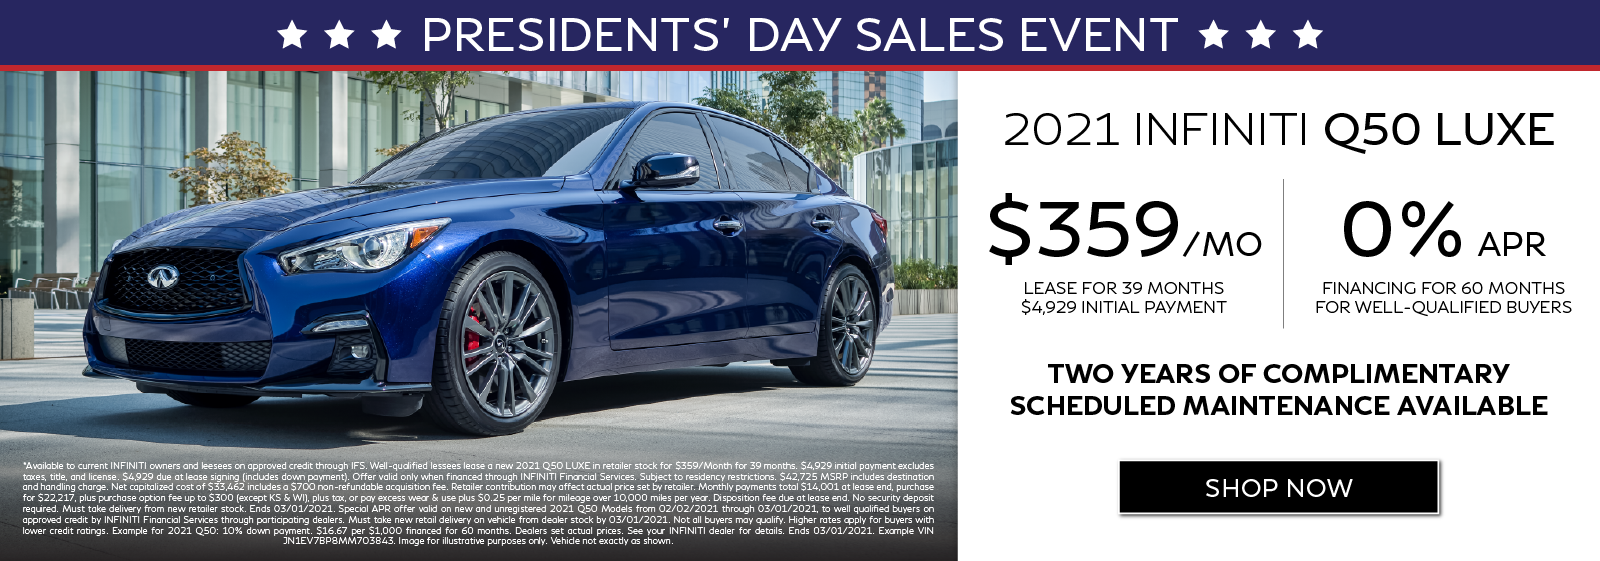 Well-qualified customers can lease a new 2021 Q50 LUXE for $359 per month for 39 months OR get 0% APR financing for 60 months. Two years of complimentary scheduled maintenance available.* Click to shop now.